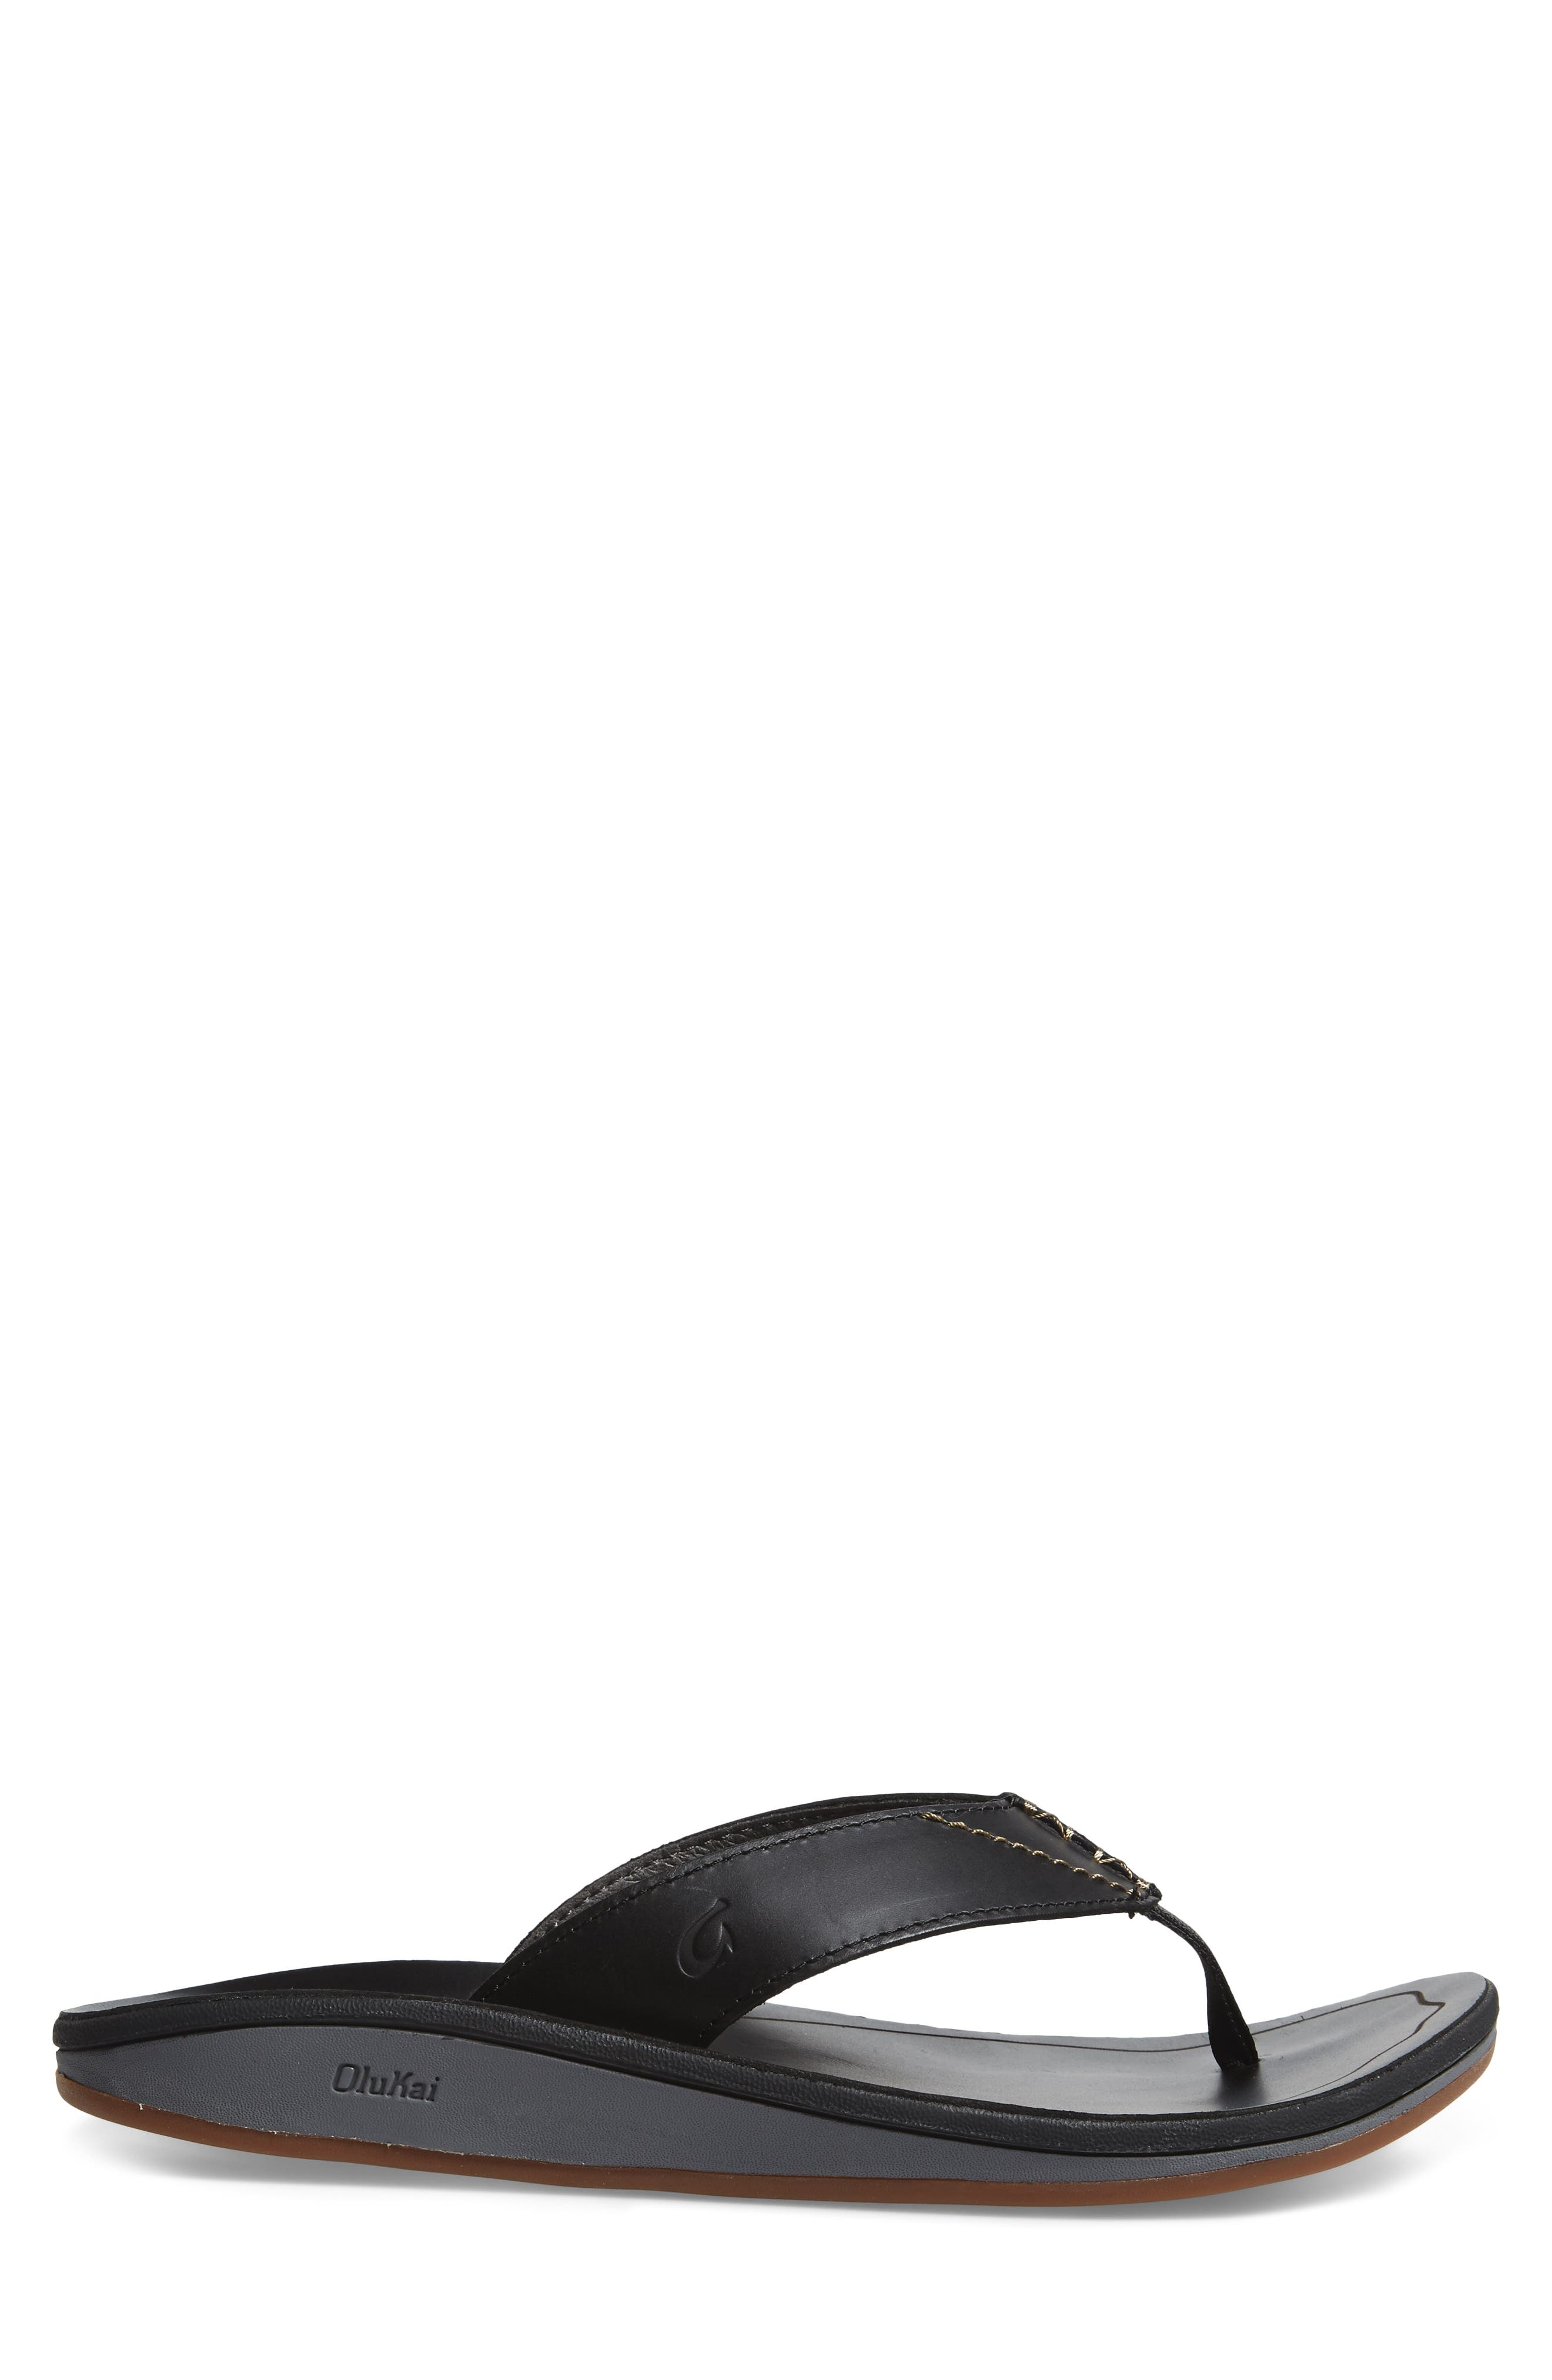 Nohona Ili Flip Flop,                             Alternate thumbnail 3, color,                             BLACK/ BLACK LEATHER